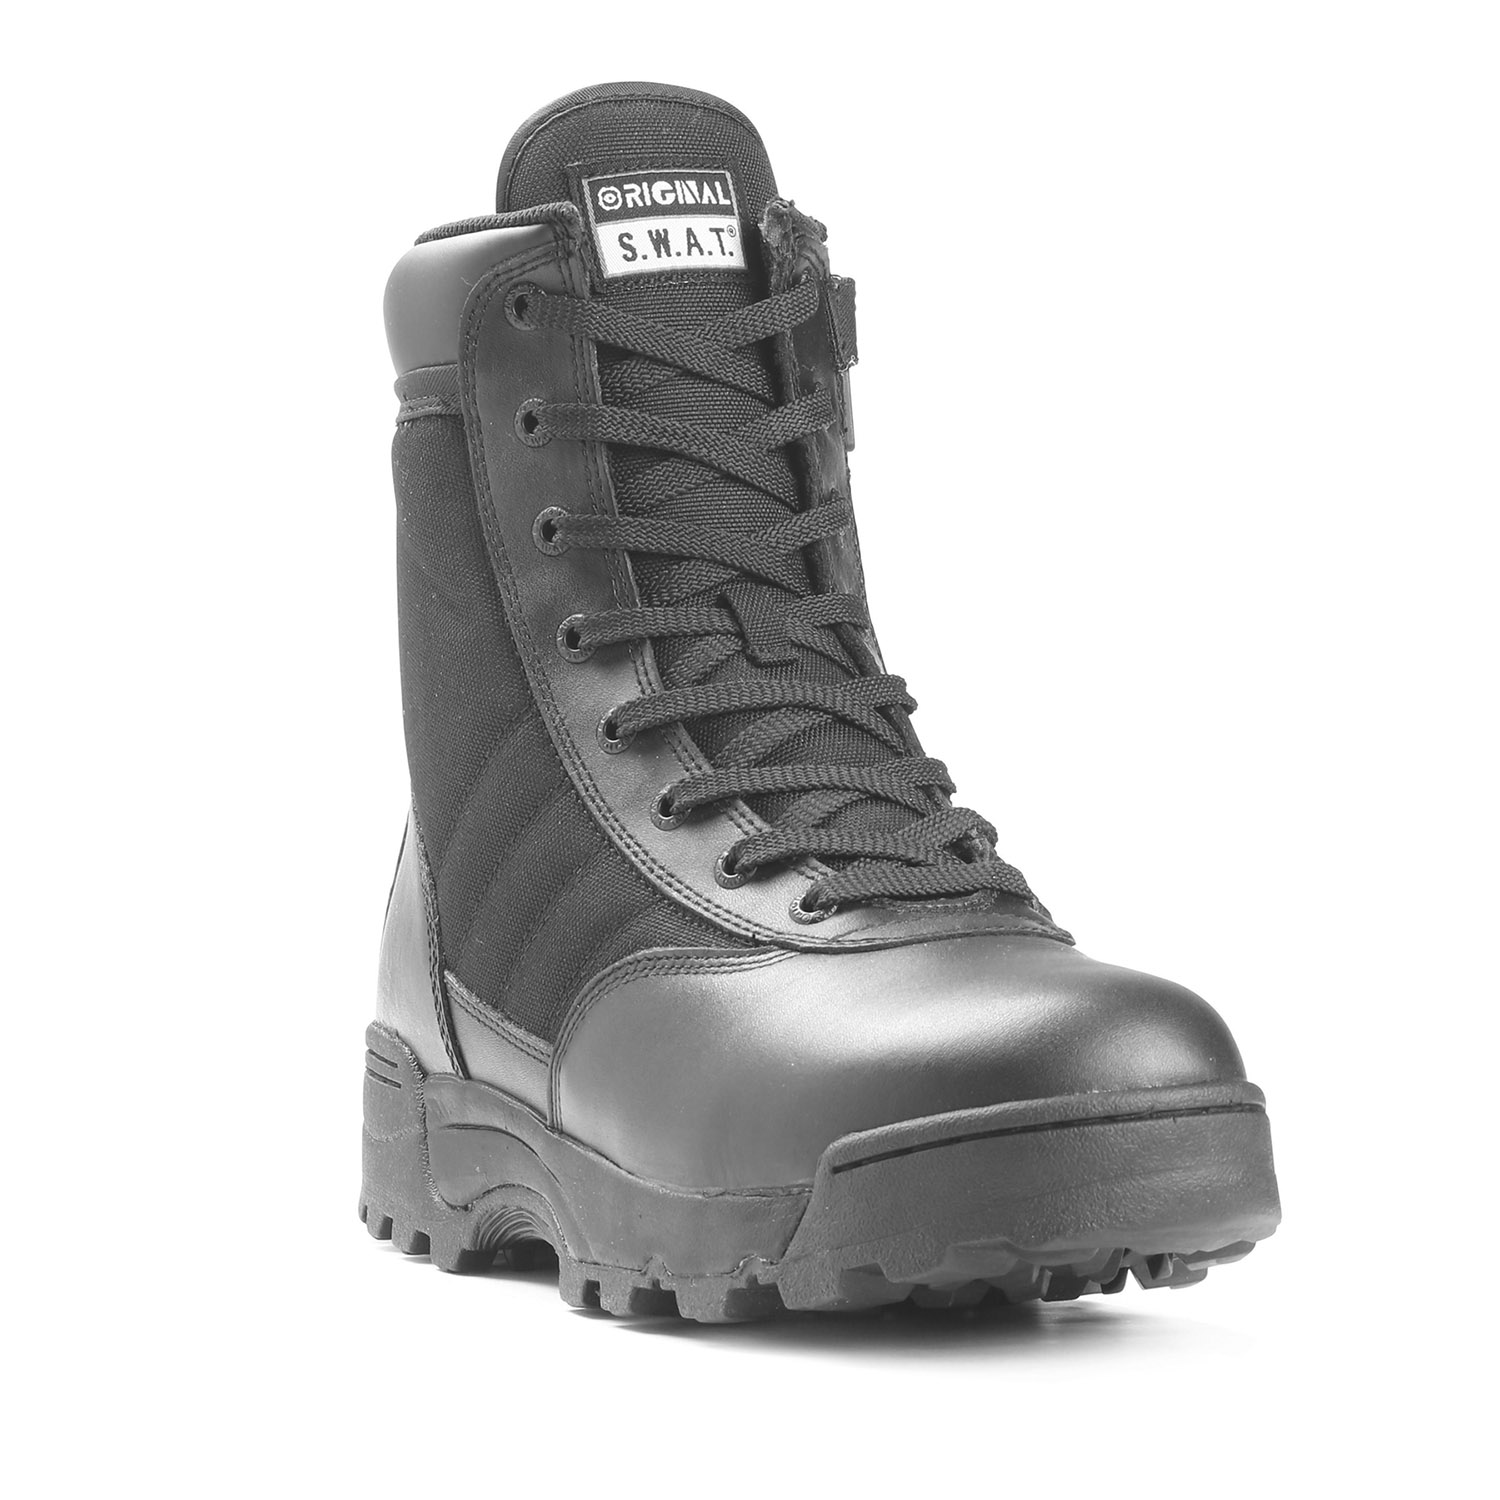 "Original S.W.A.T. 9"" Classic Side Zip Boot (Black)"